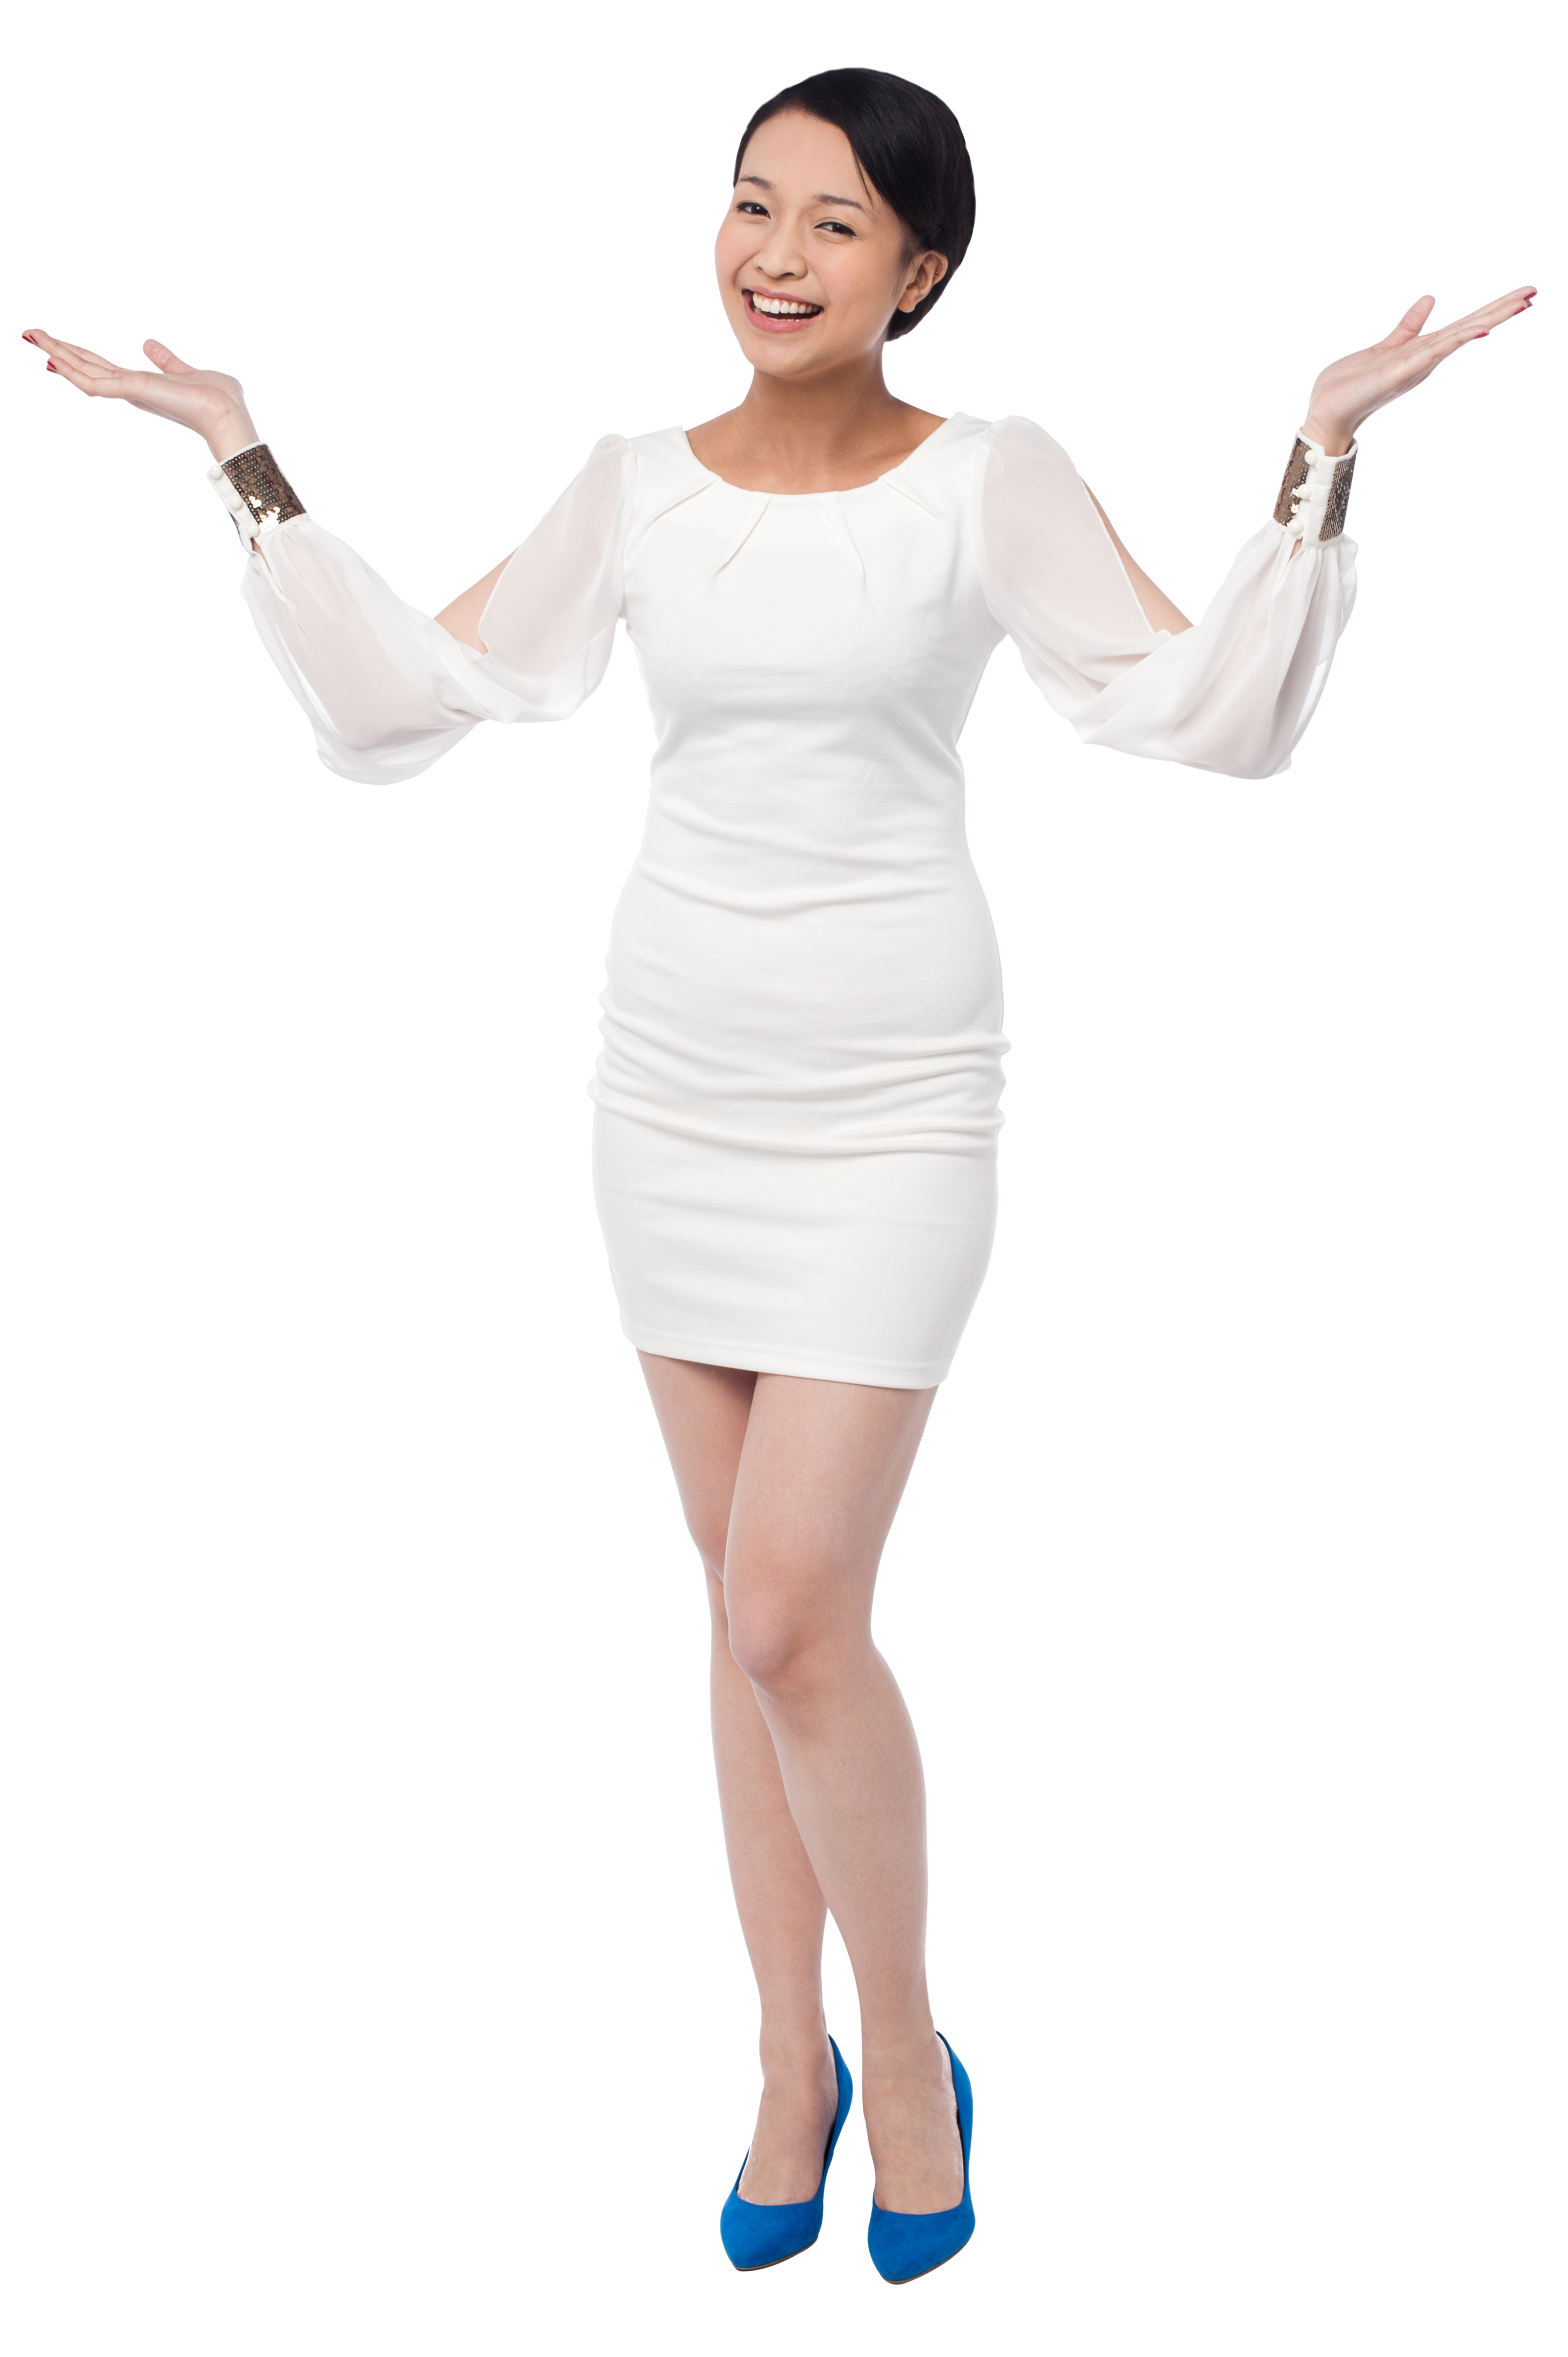 Women Pointing Both Sides Free Commercial Use PNG Image - Free PNG HD Images For Commercial Use